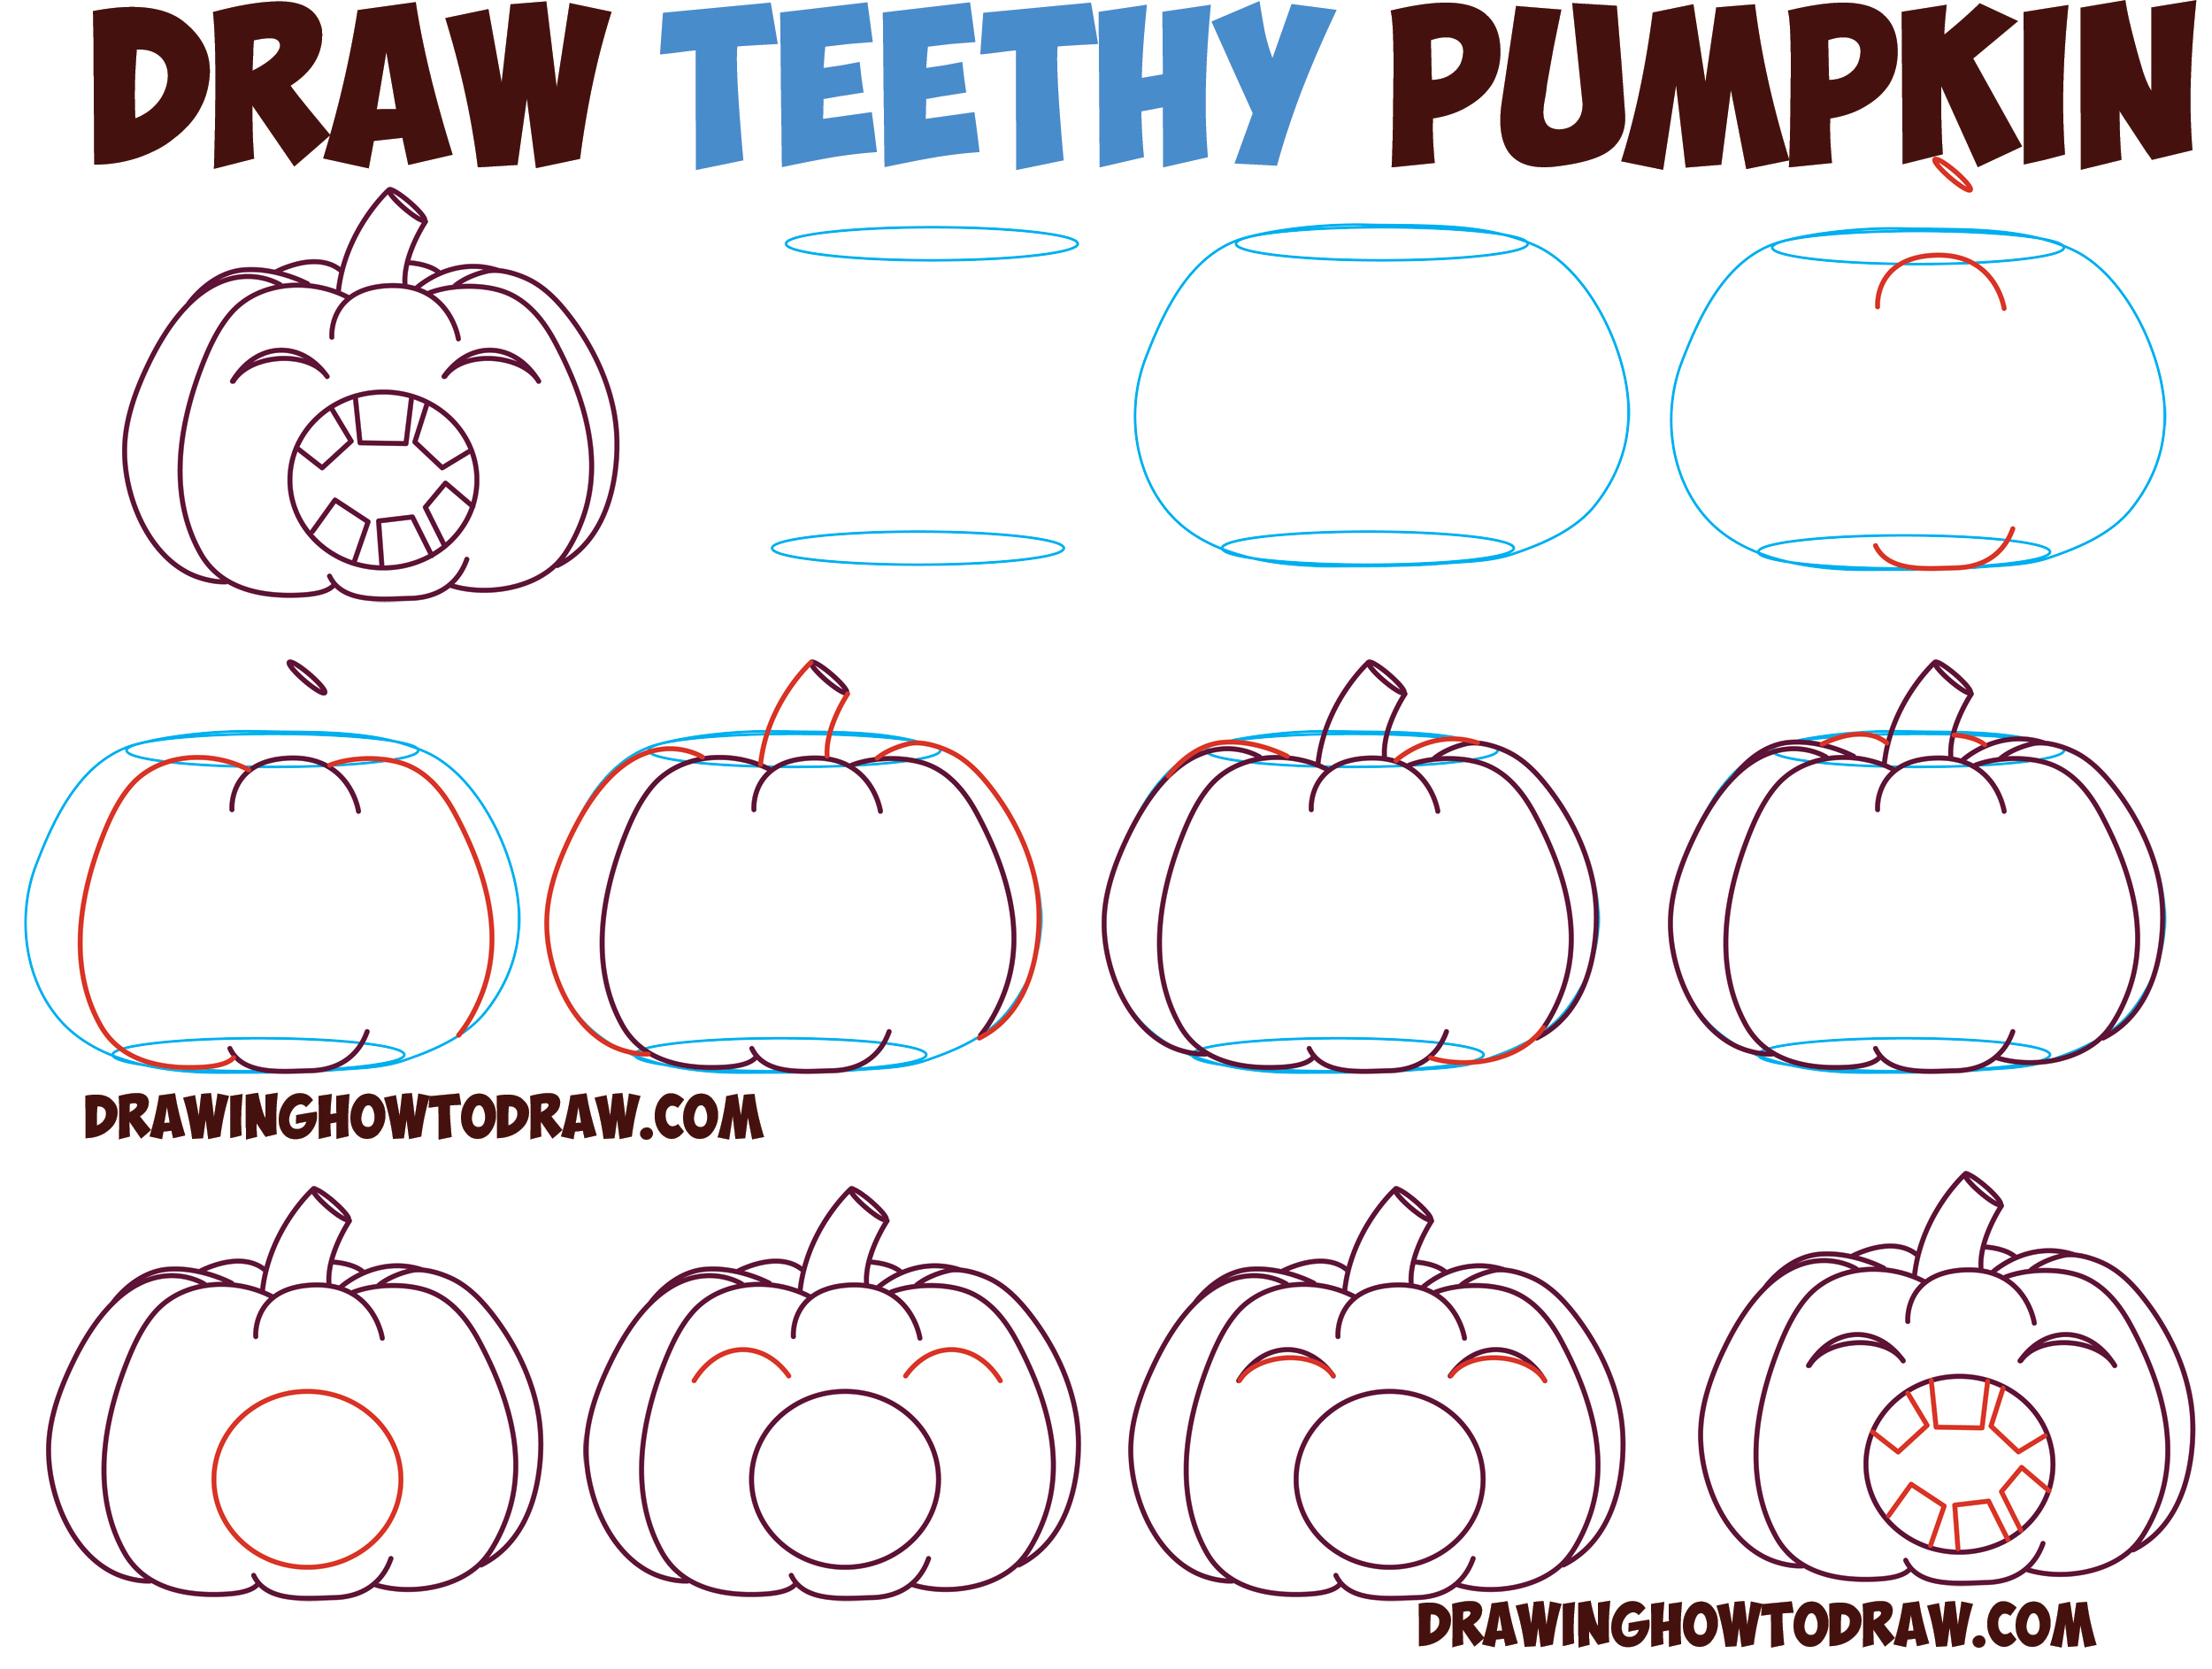 Uncategorized How Do You Draw A Pumpkin huge guide to drawing cartoon pumpkin faces jack olantern how draw mouth wide open full of